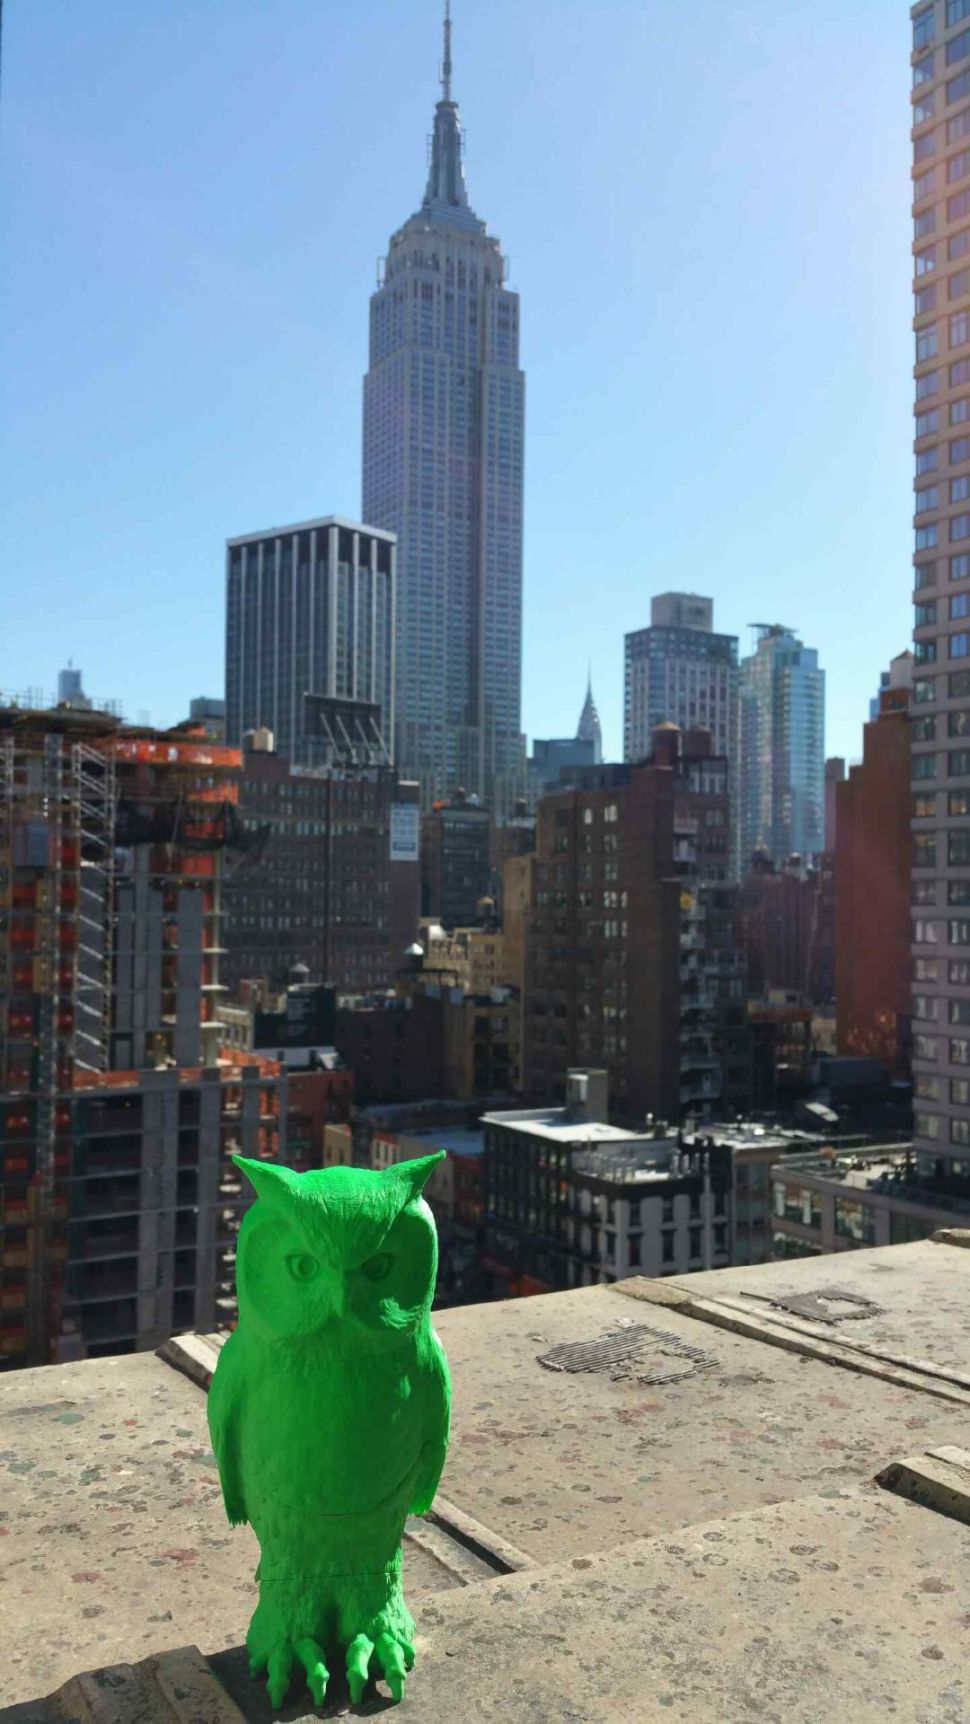 3D Printed Scarecrow Owls Are Successfully Ridding NYC of Those Godawful Pigeons